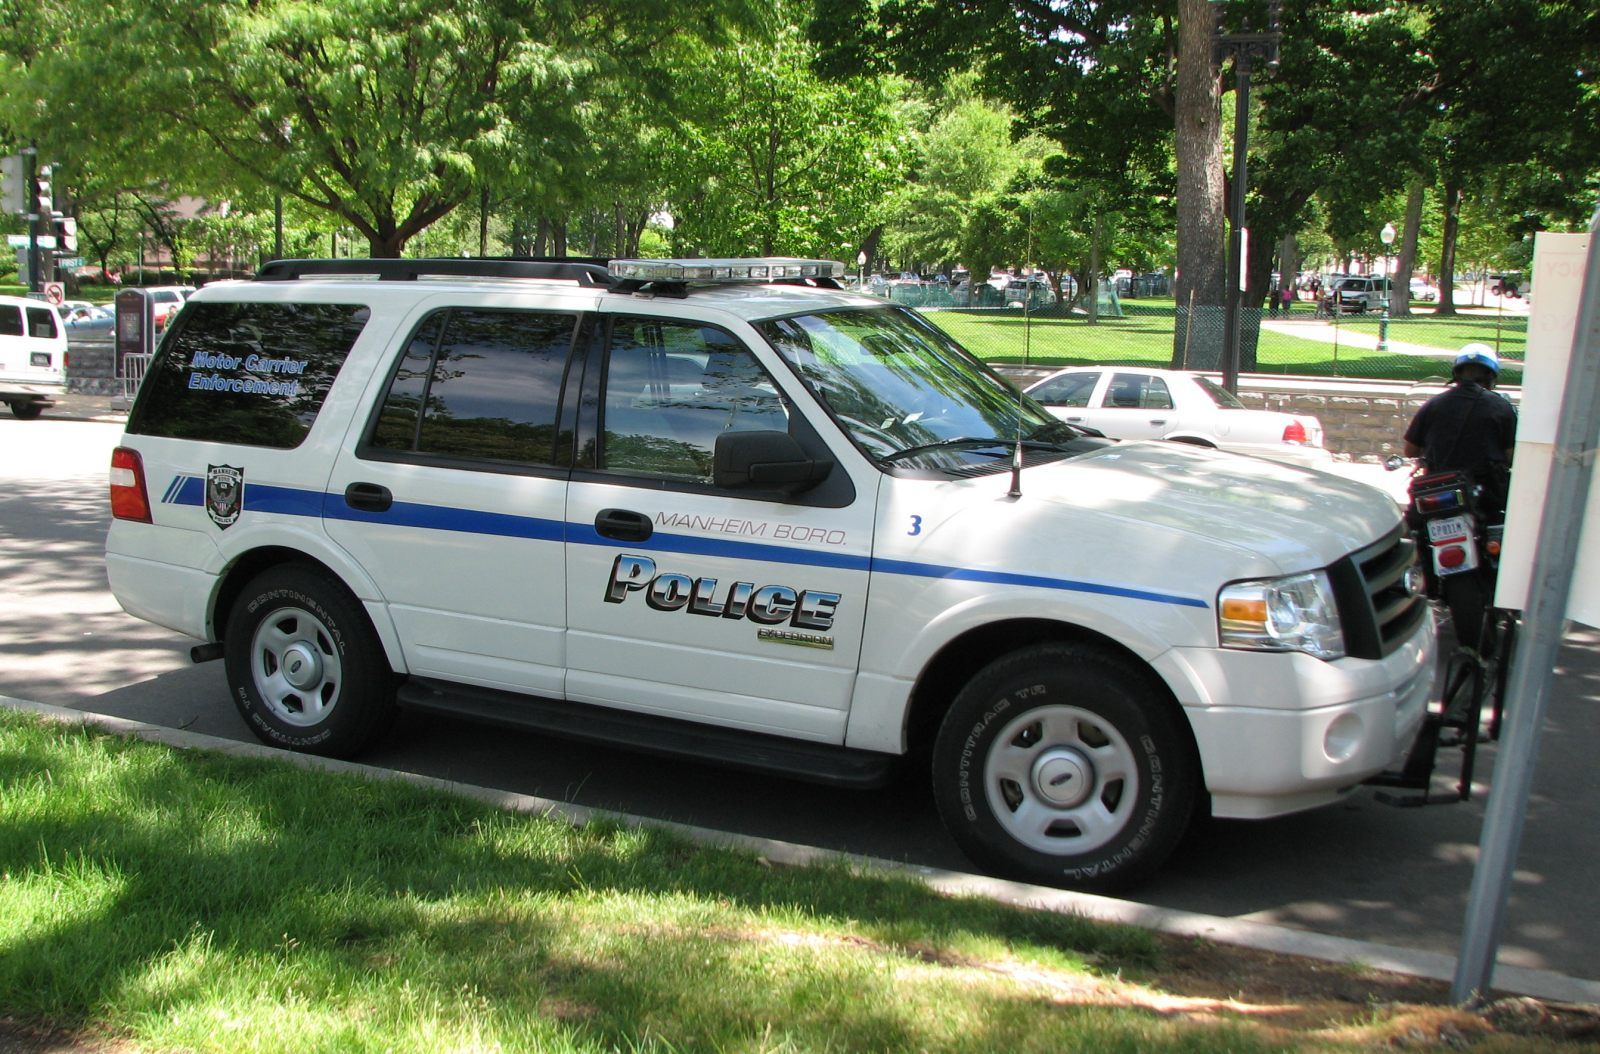 Police Car Website >> Police Car Website